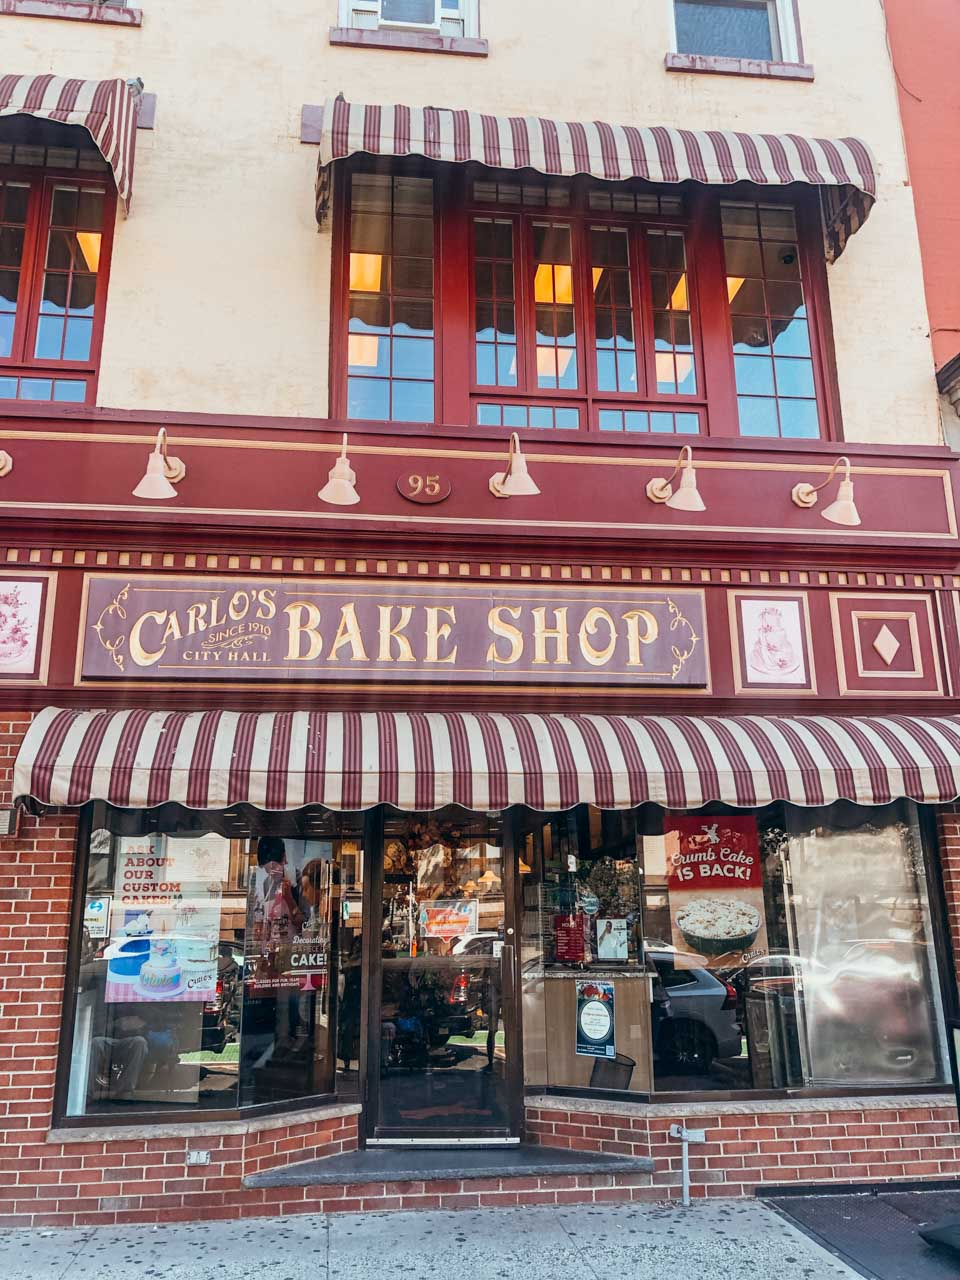 The outside of Carlo's Bake Shop in Hoboken, New Jersey